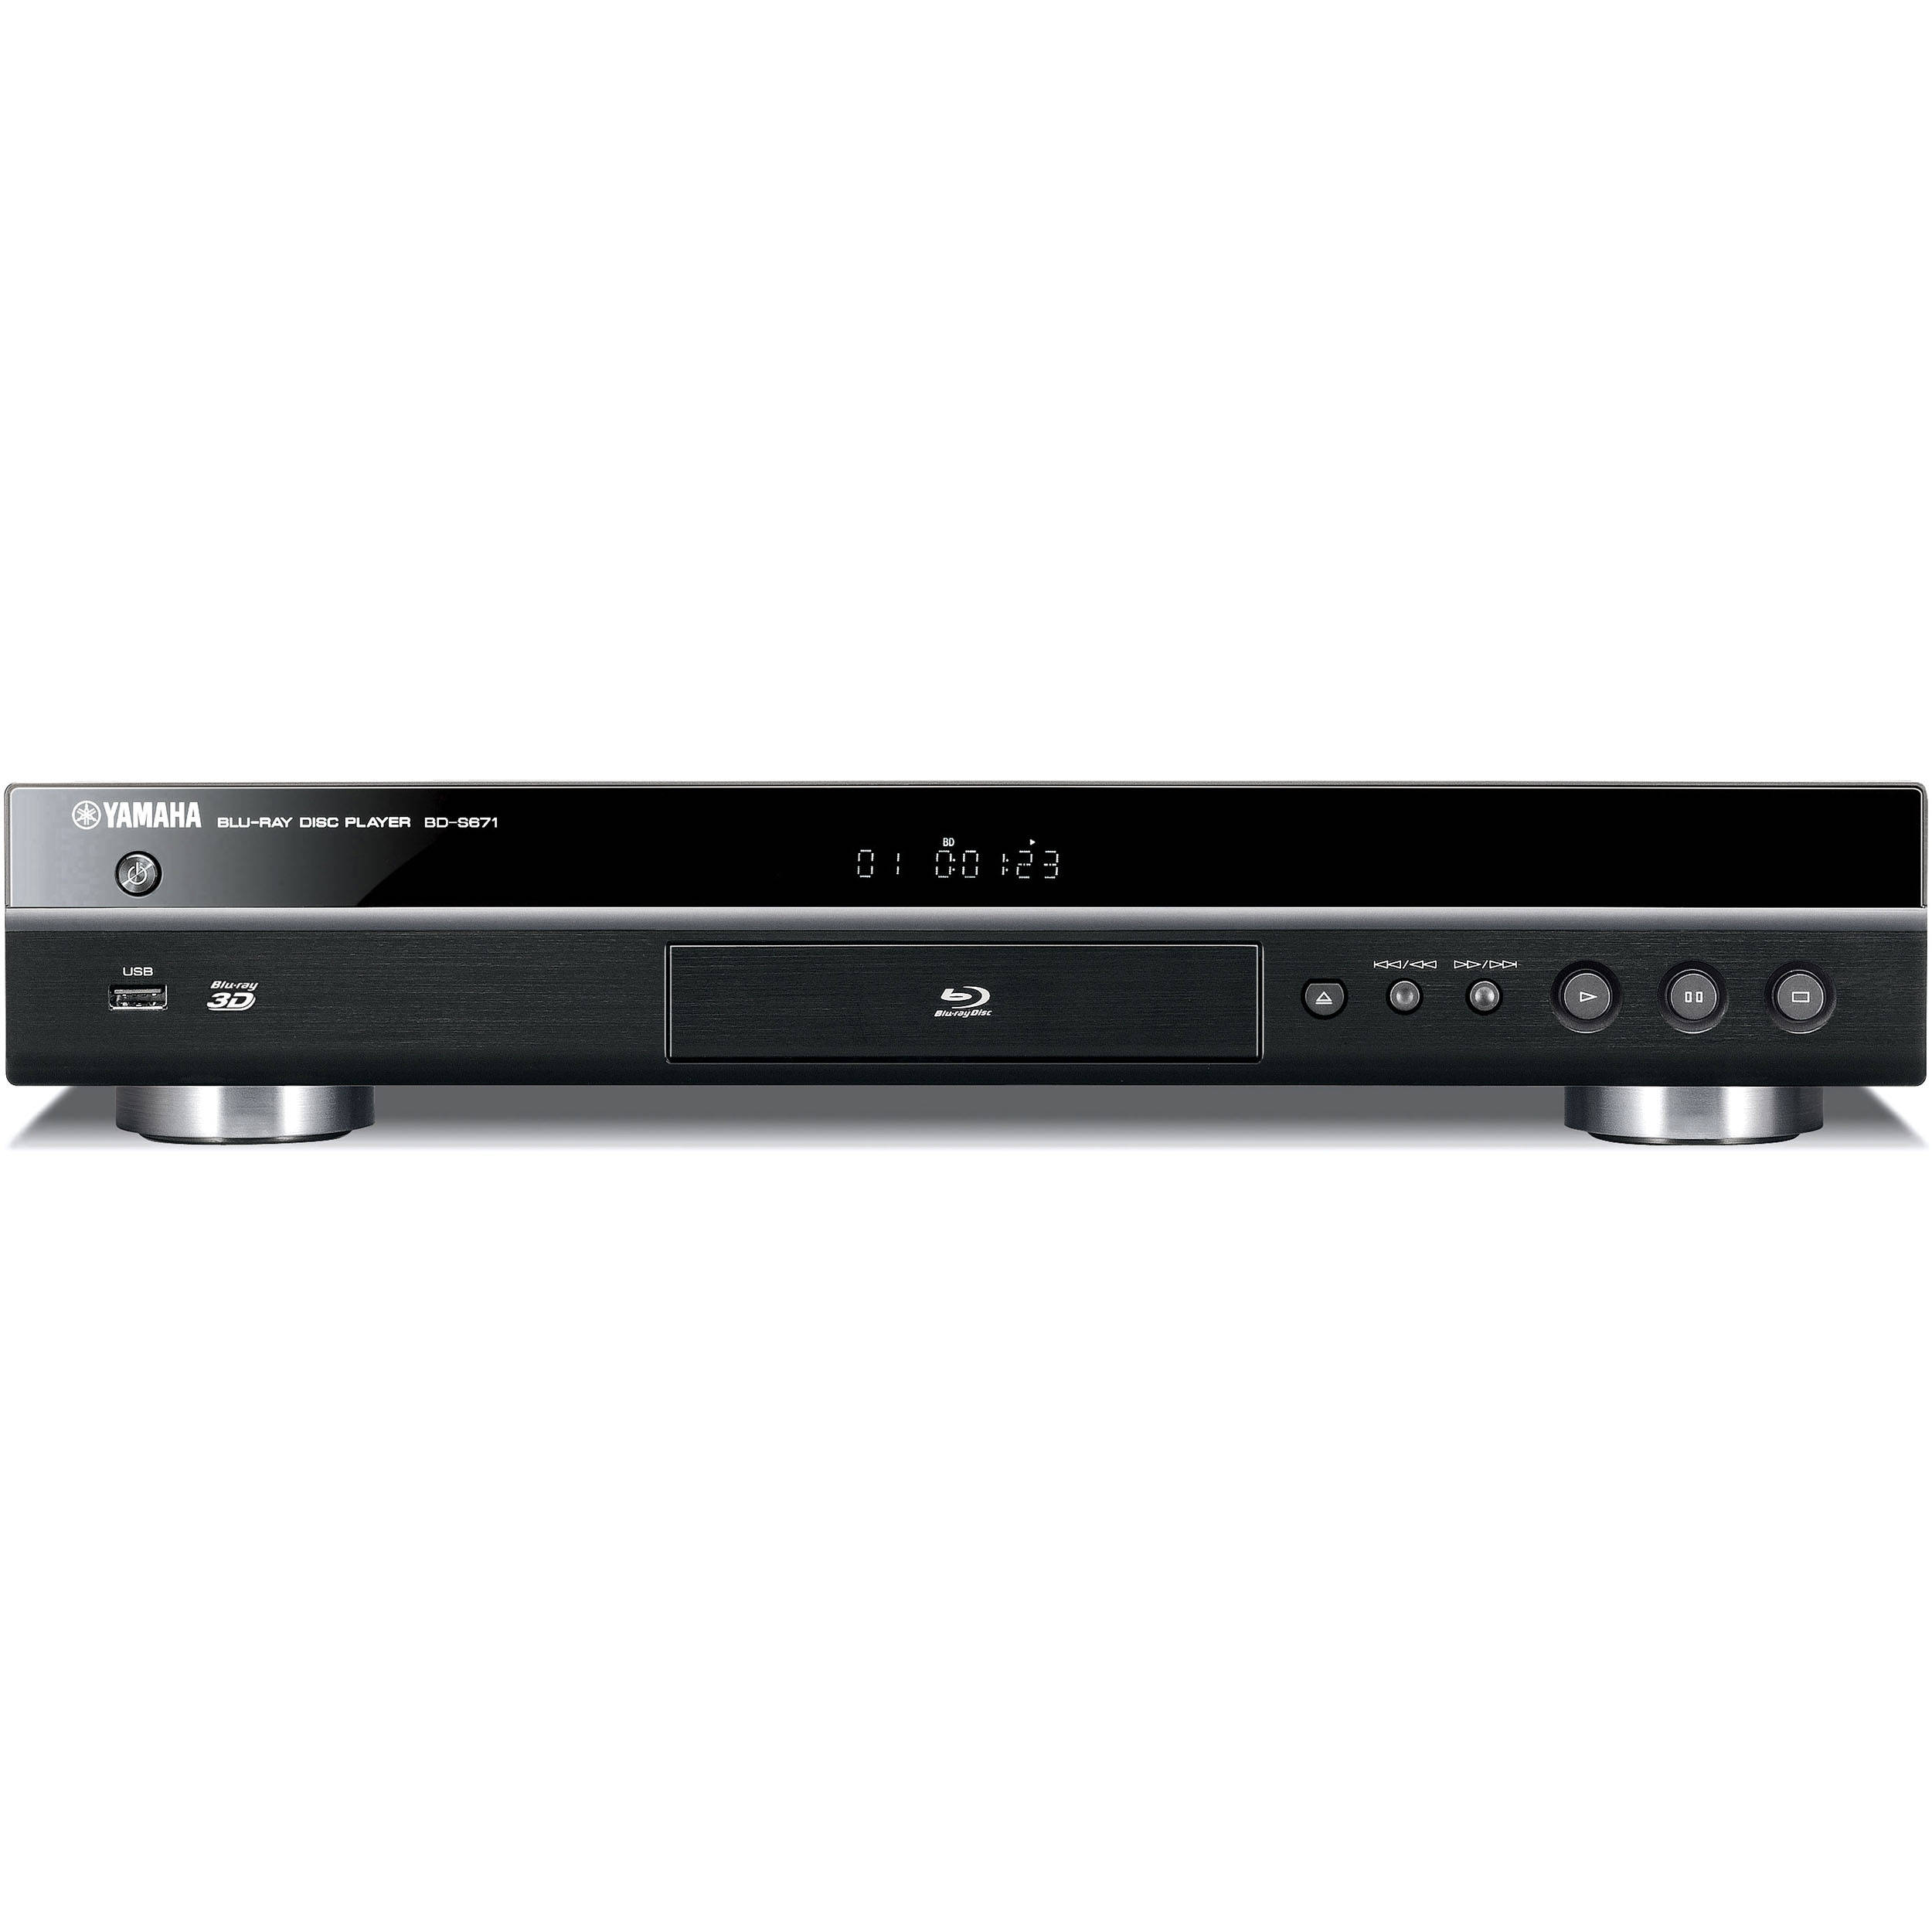 yamaha bd s671 blu ray disc player black bd s671bl b h photo. Black Bedroom Furniture Sets. Home Design Ideas